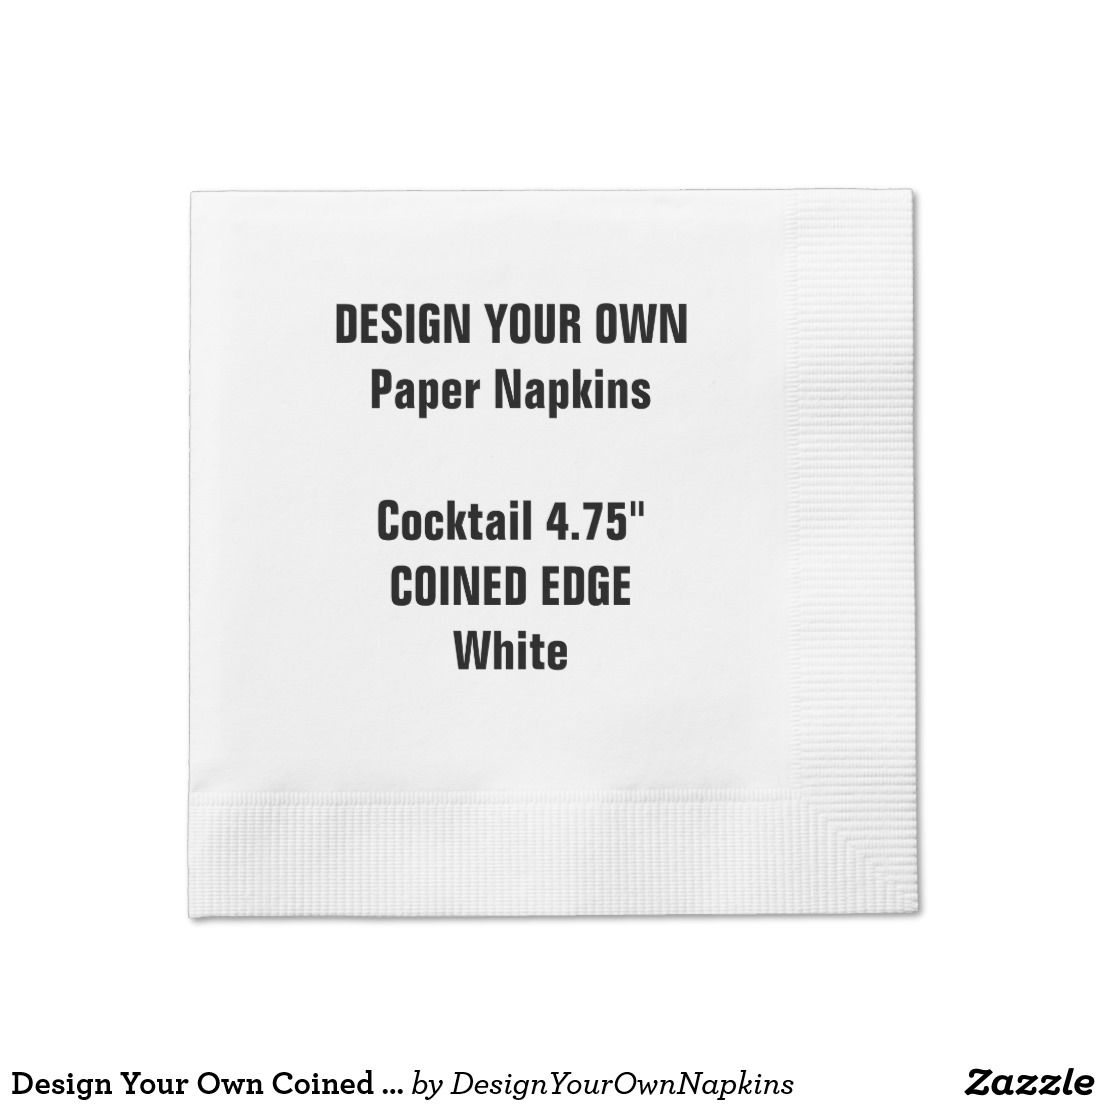 design your own coined edge cocktail paper napkins